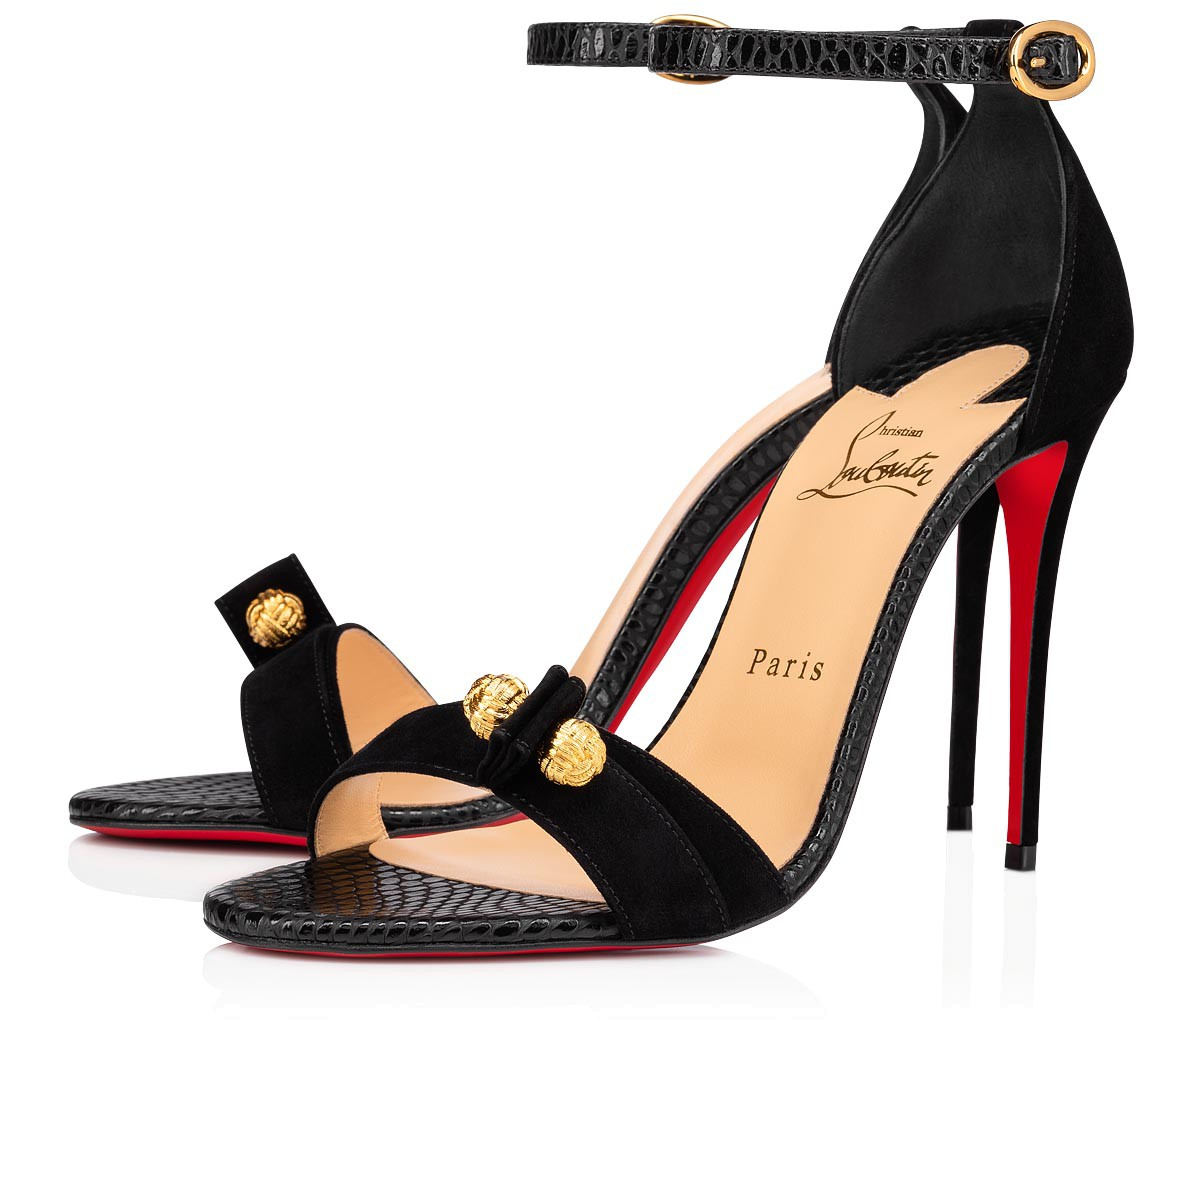 Shoes - Stanisandal - Christian Louboutin